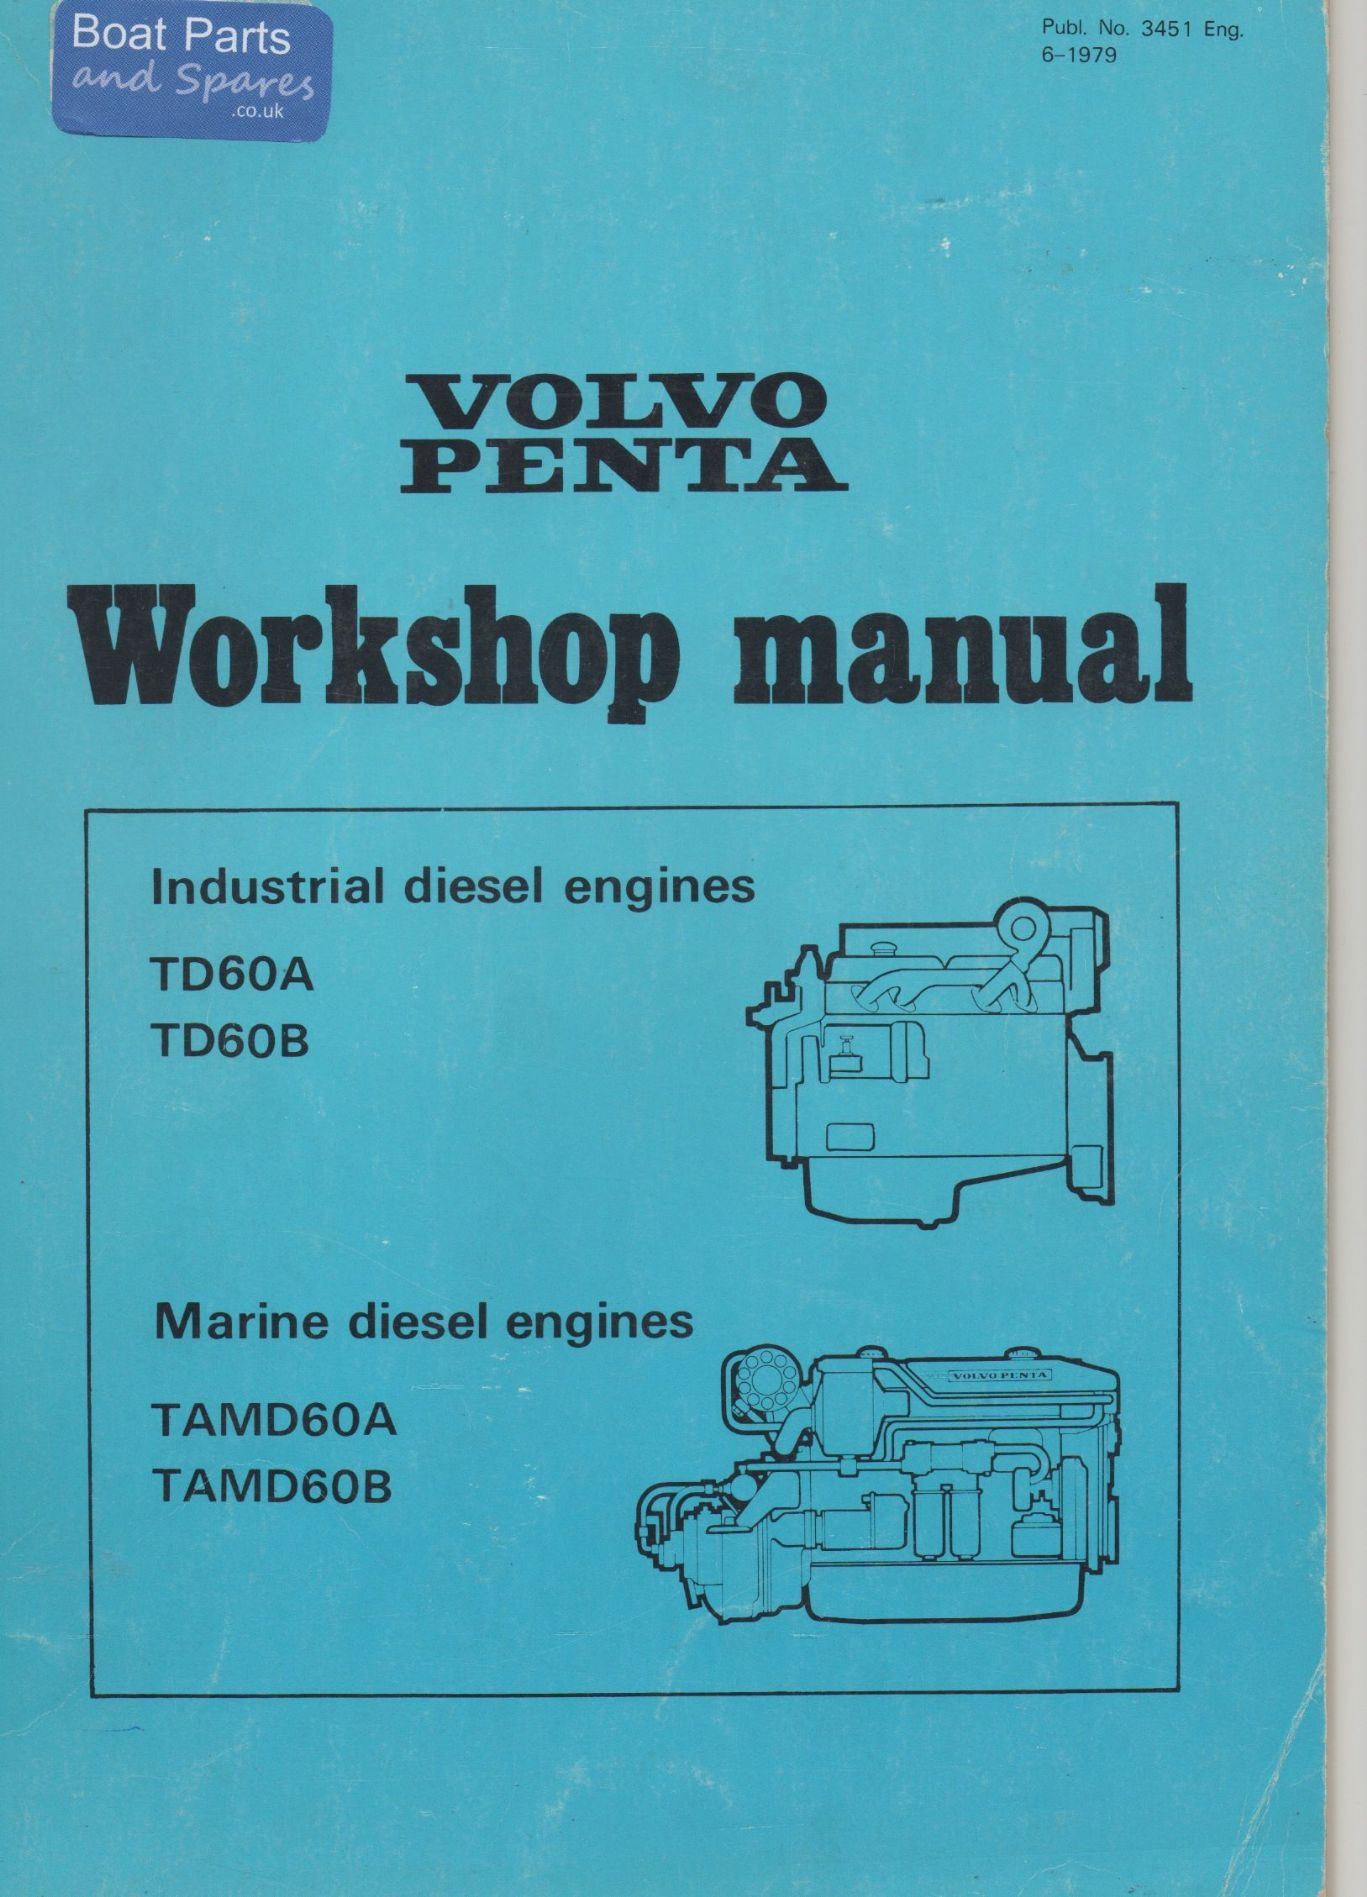 Volvo Penta TD60A, TD60B, TAMD60A, TAMD60B Workshop Manual